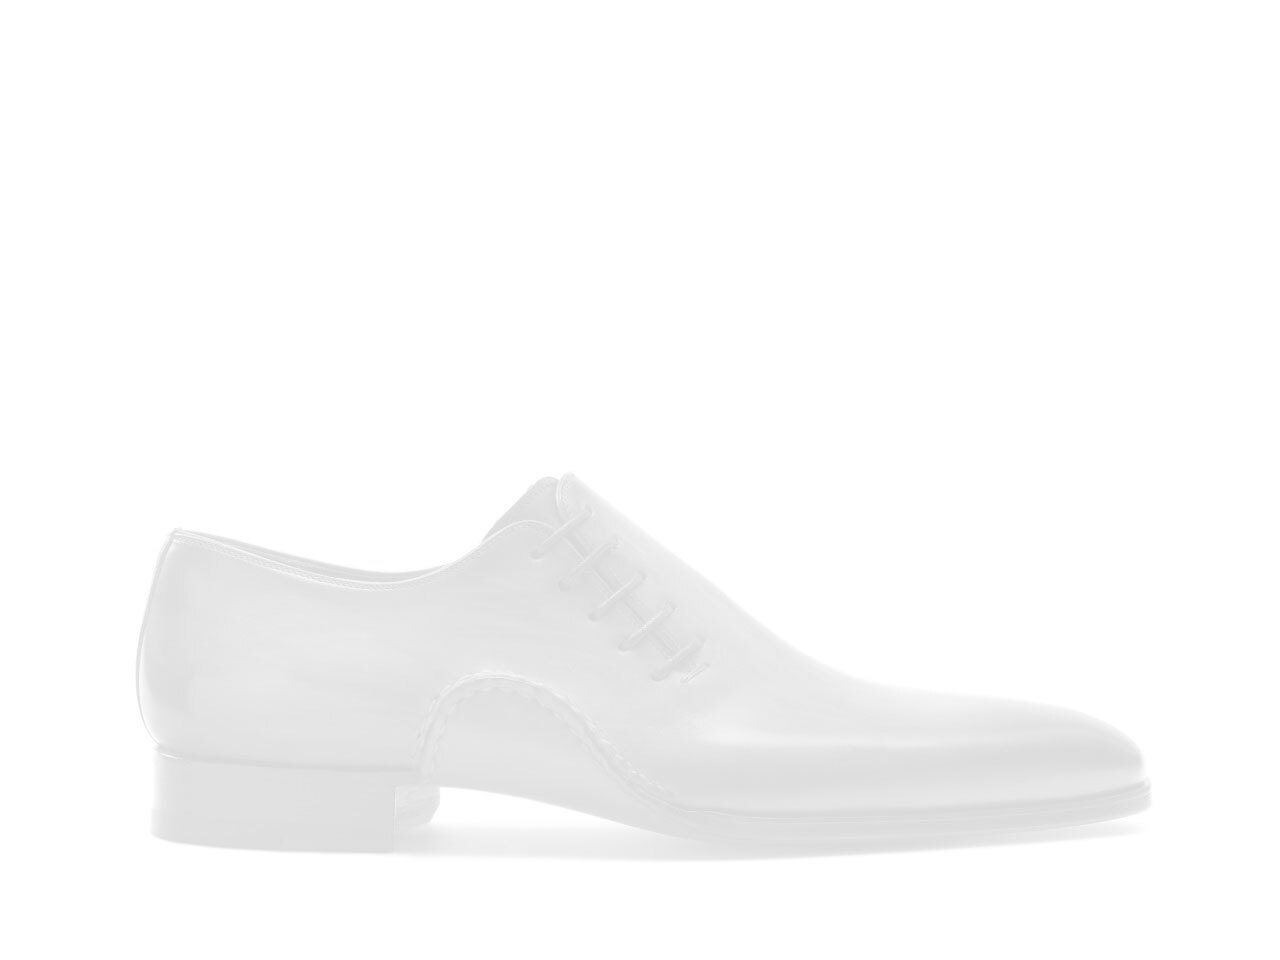 Side view of the Magnanni Volar Grey Men's Sneakers